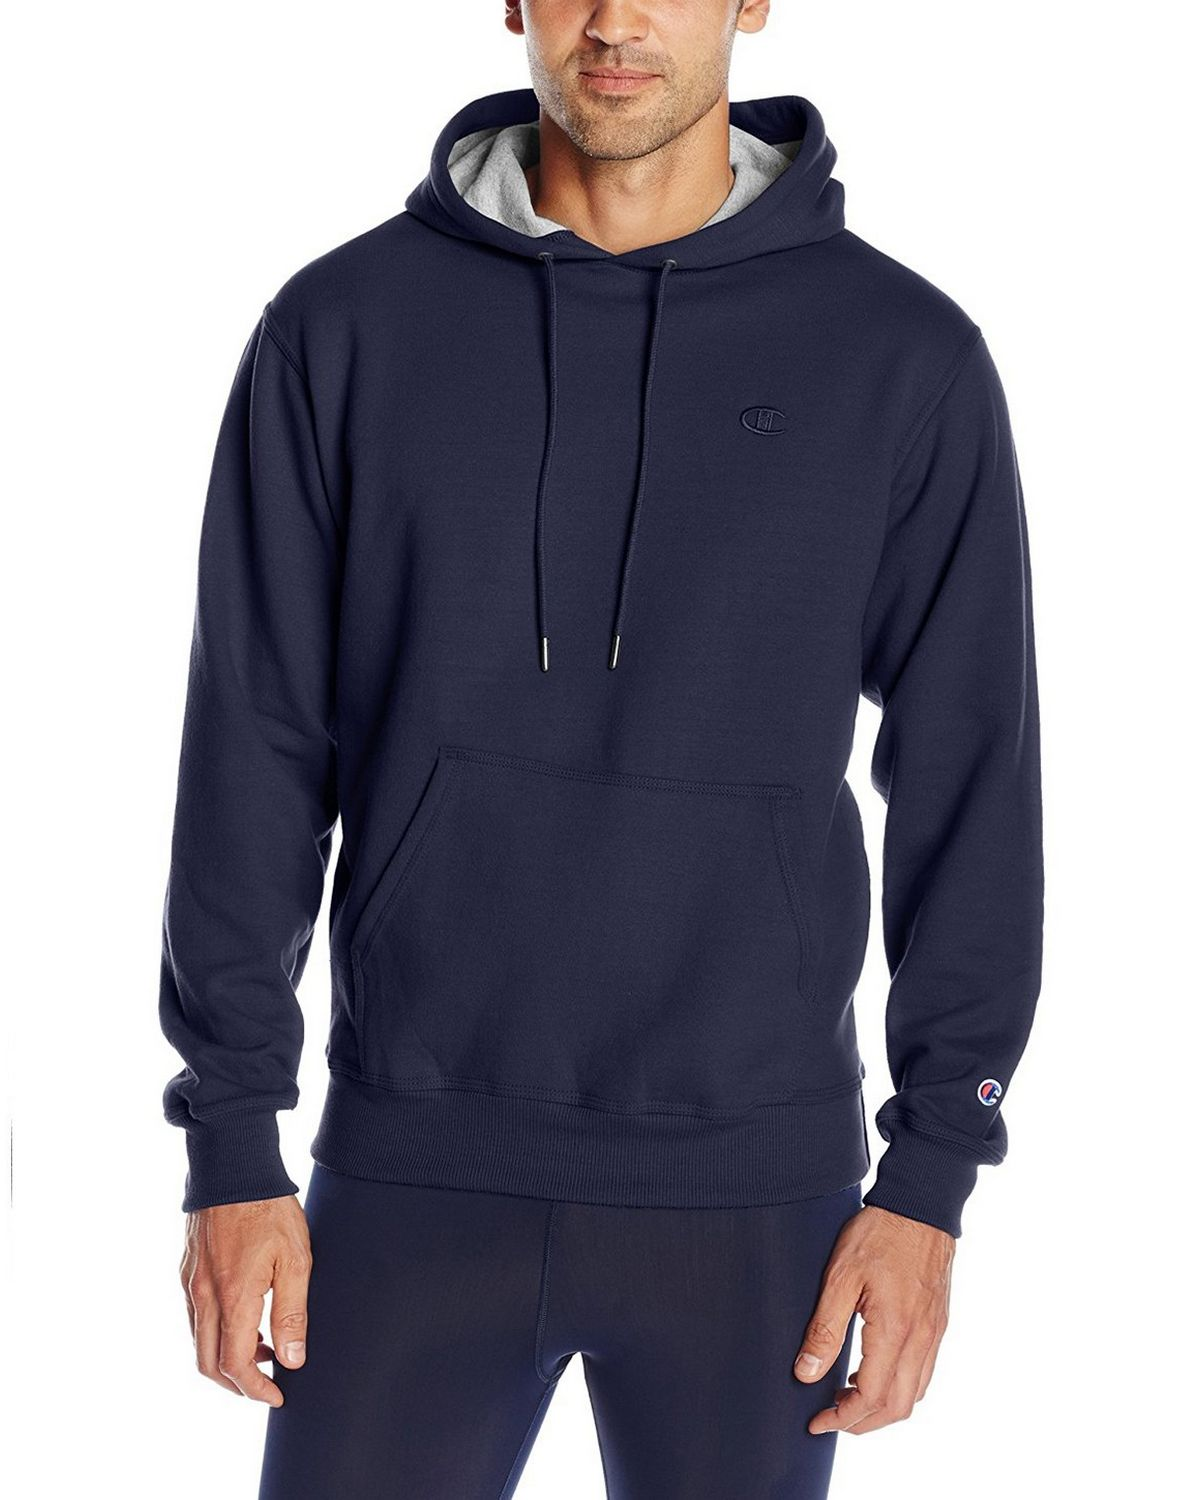 Champion S0889 Mens Fleece Pullover Hoodie - Navy - S S0889